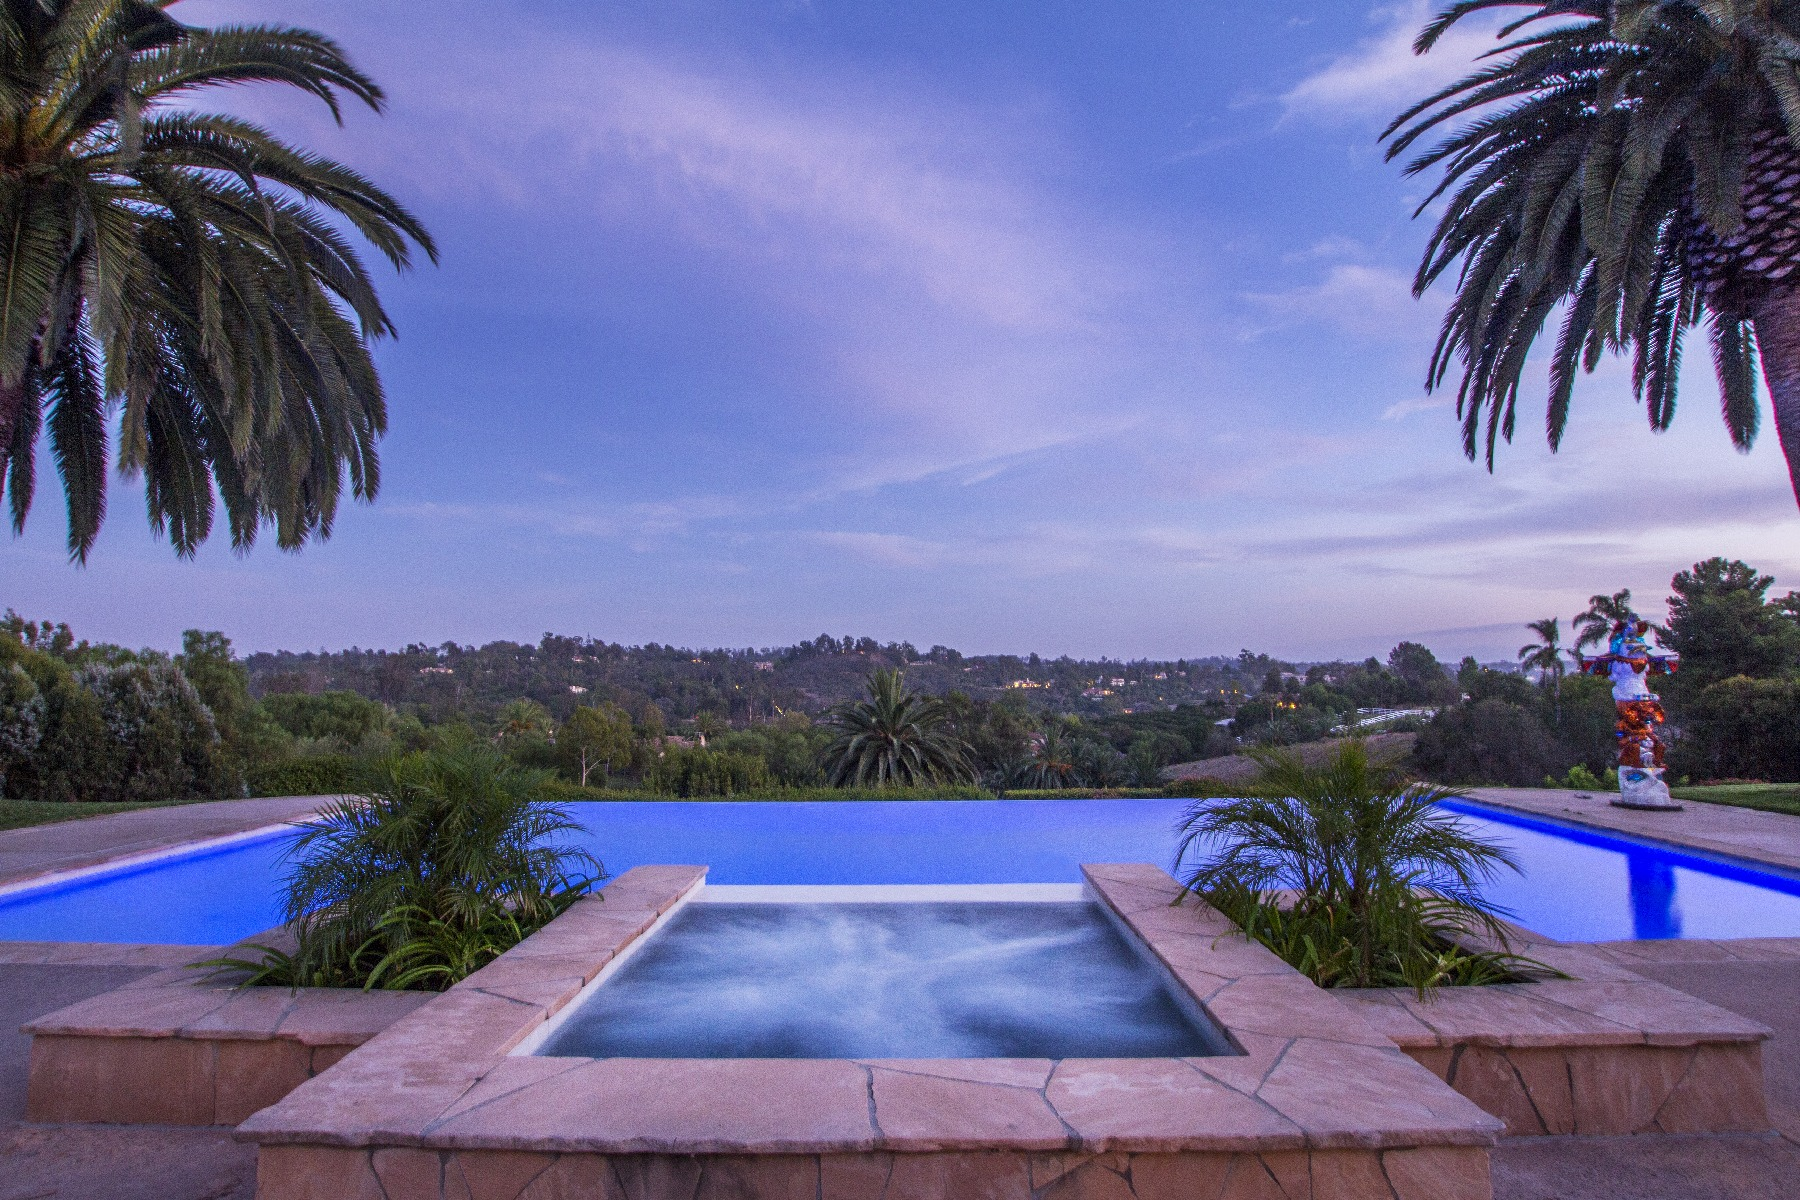 Single Family Home for Sale at Fortuna 17501 Via De Fortuna Rancho Santa Fe, California, 92067 United States